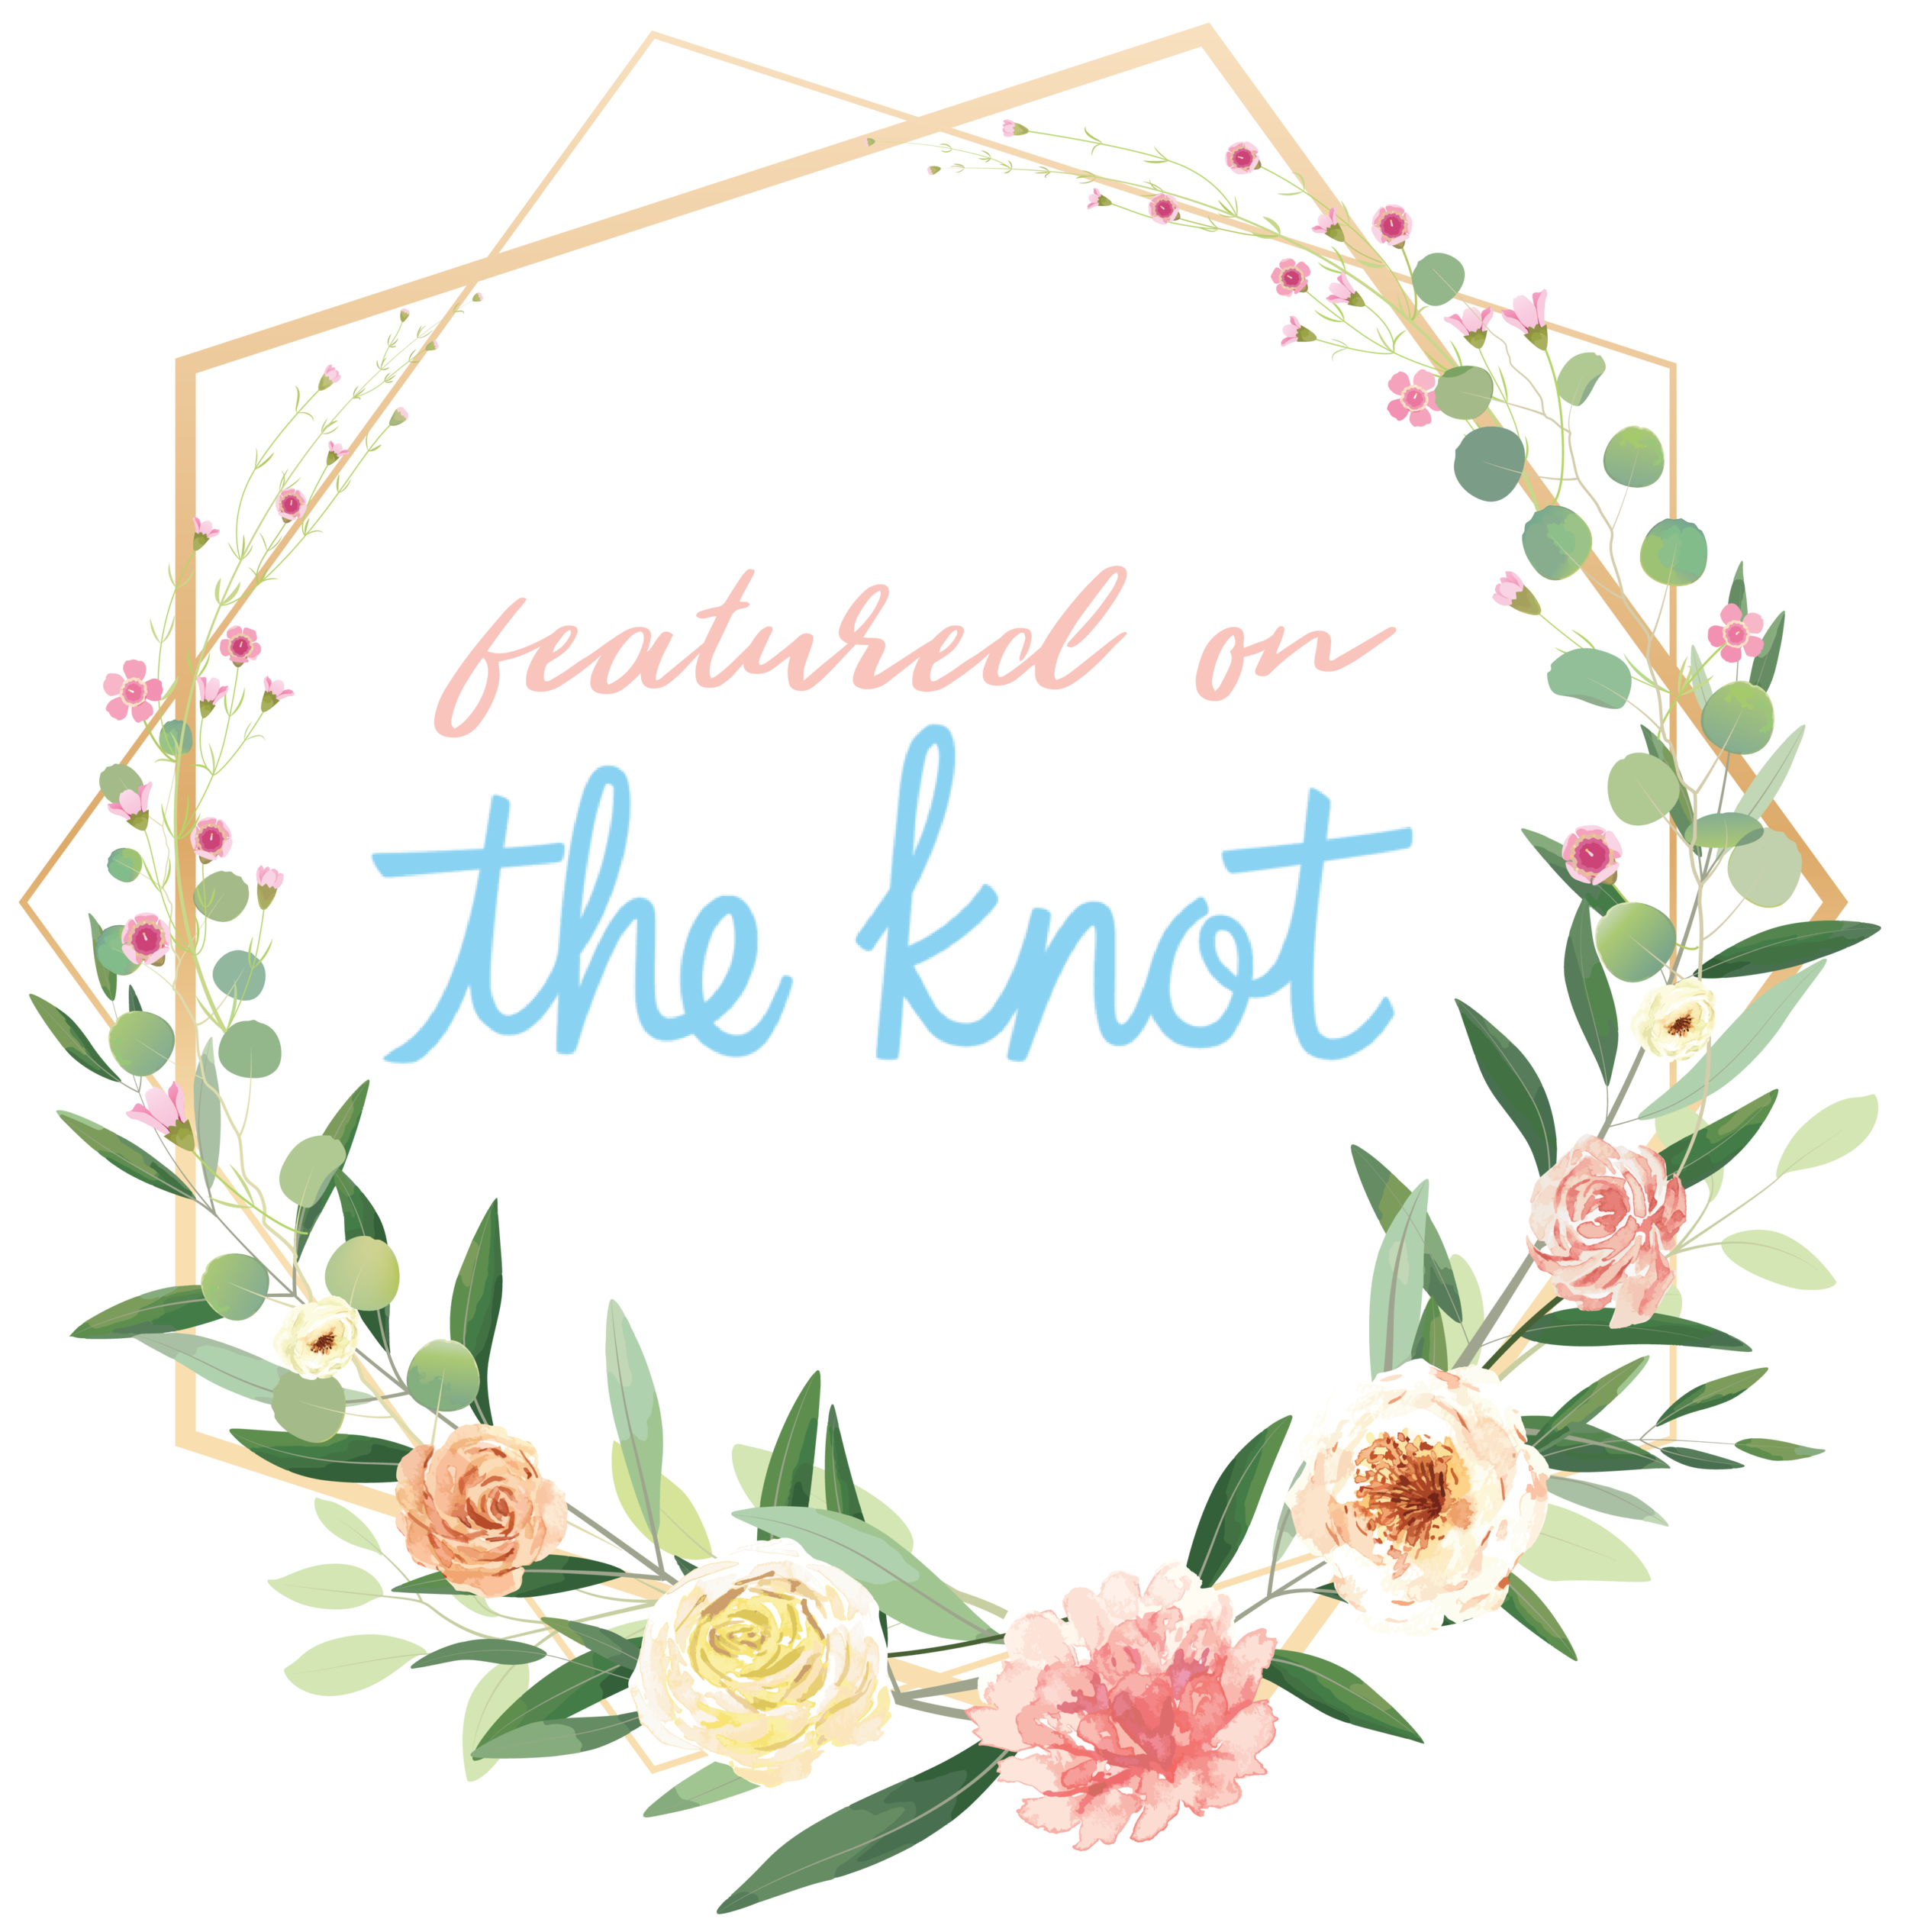 Garvey Family Wedding Barn The Knot.png